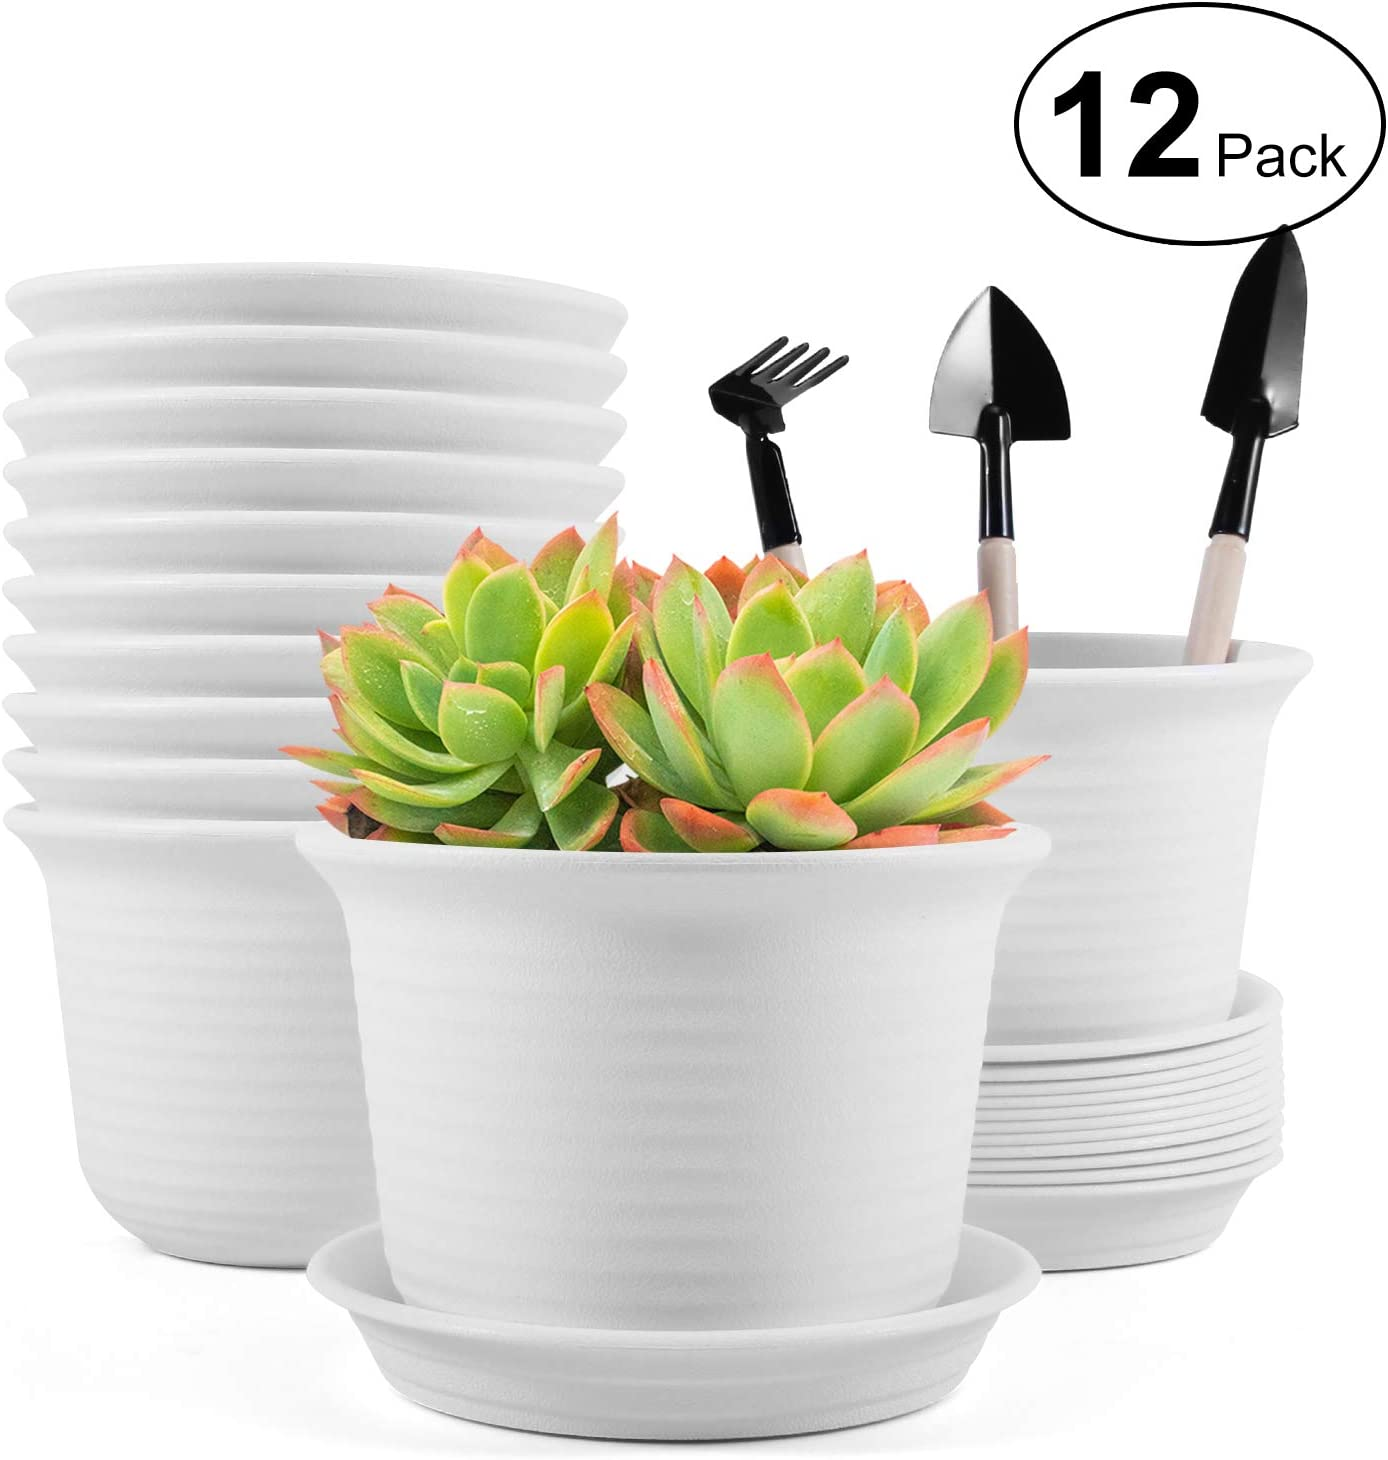 Plastic Planters, 12Pcs Flower Plant Pots, Indoor & Outdoor Modern Decorative Gardening Pot with Drainage Hole and Pallet for All House Plants, Herbs, Seedlings, Nursery, Succulents and Cactus - White